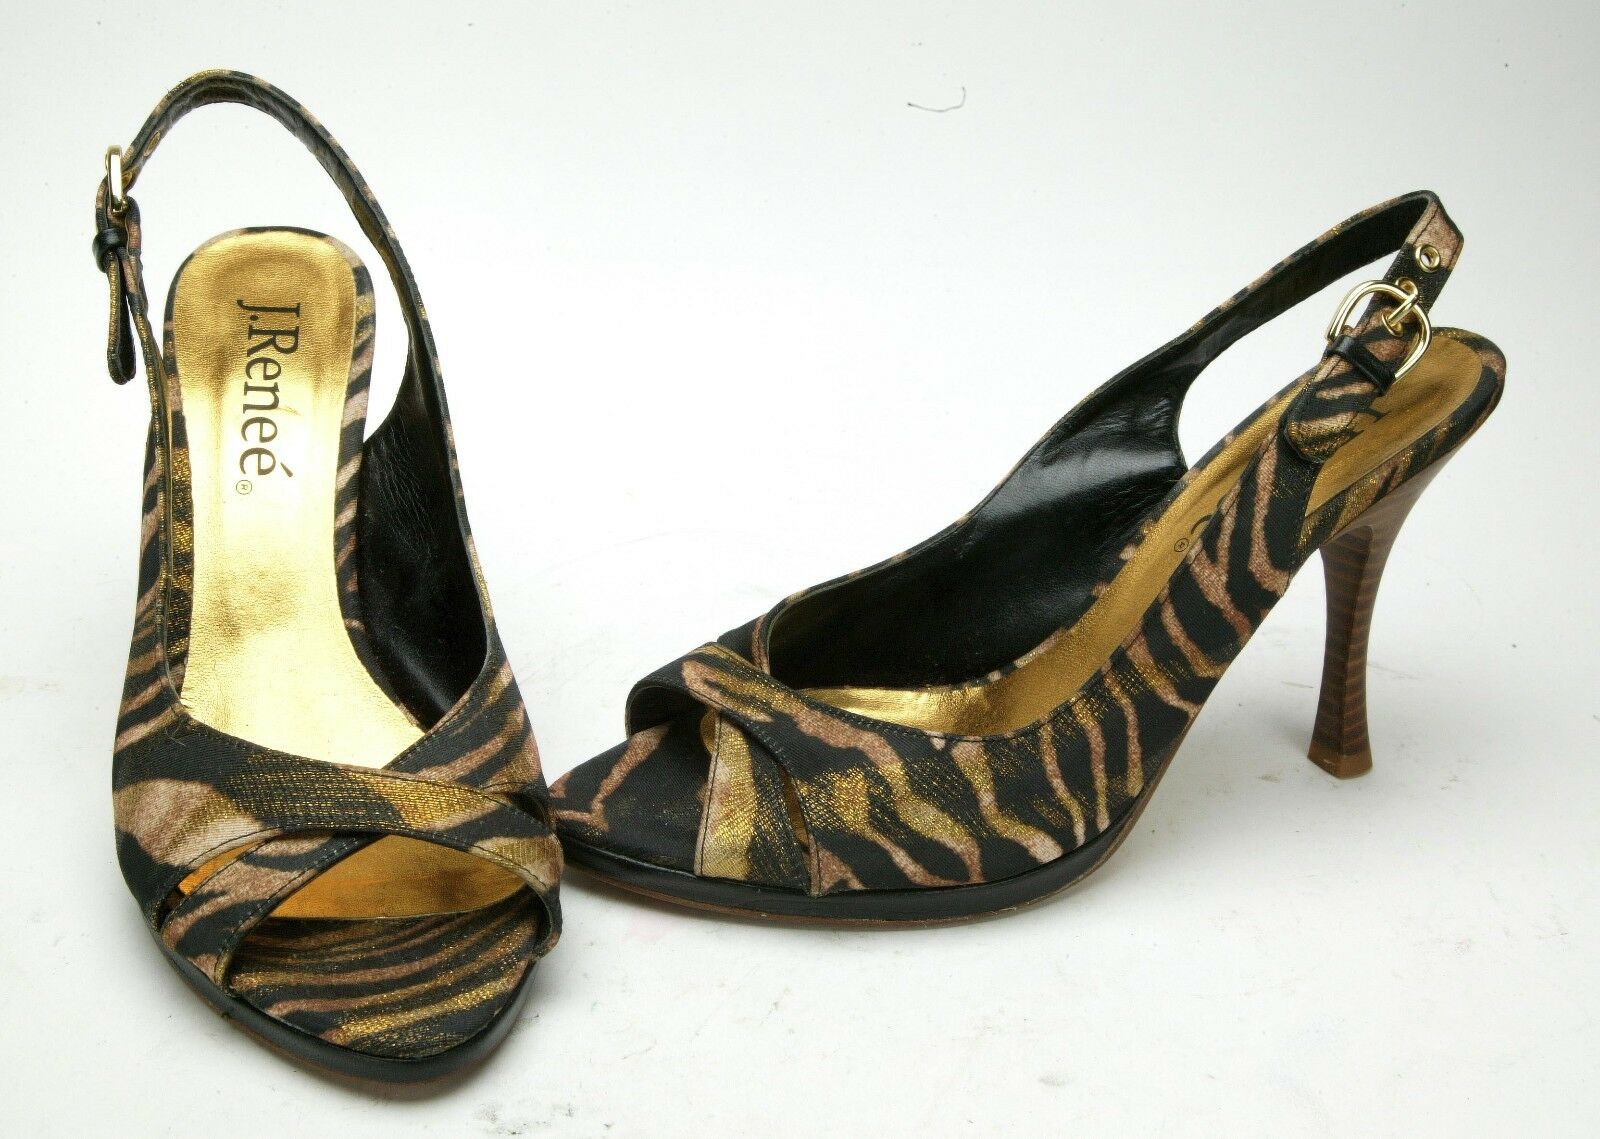 J. Renee Women's Unusual High Heel shoes From Textile Upper. Size 8,5. New.